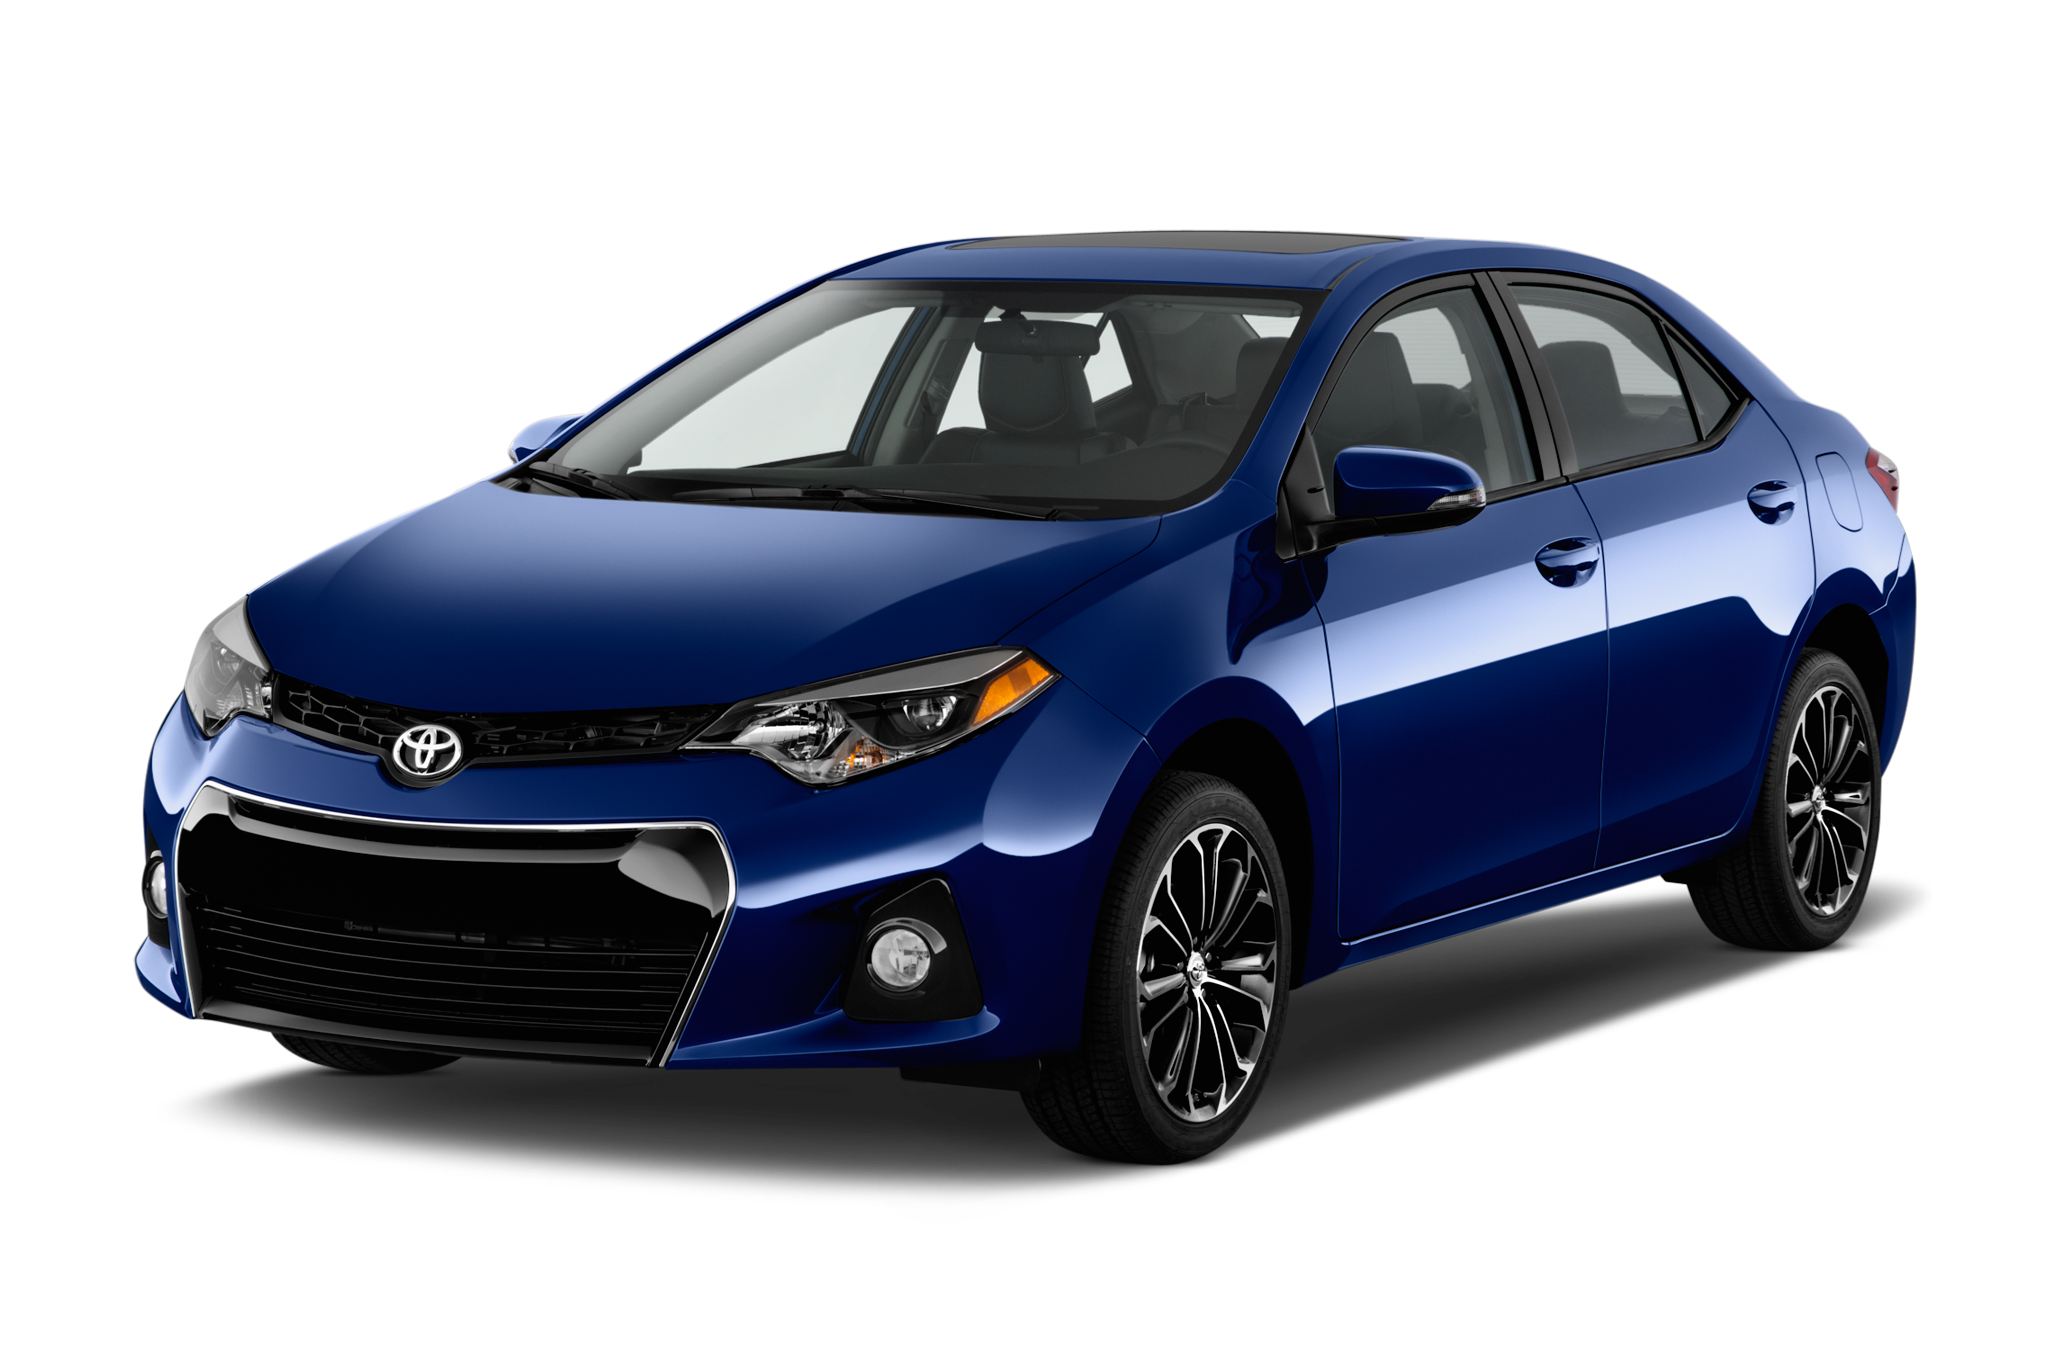 2016 toyota corolla s plus reviews msn autos. Black Bedroom Furniture Sets. Home Design Ideas